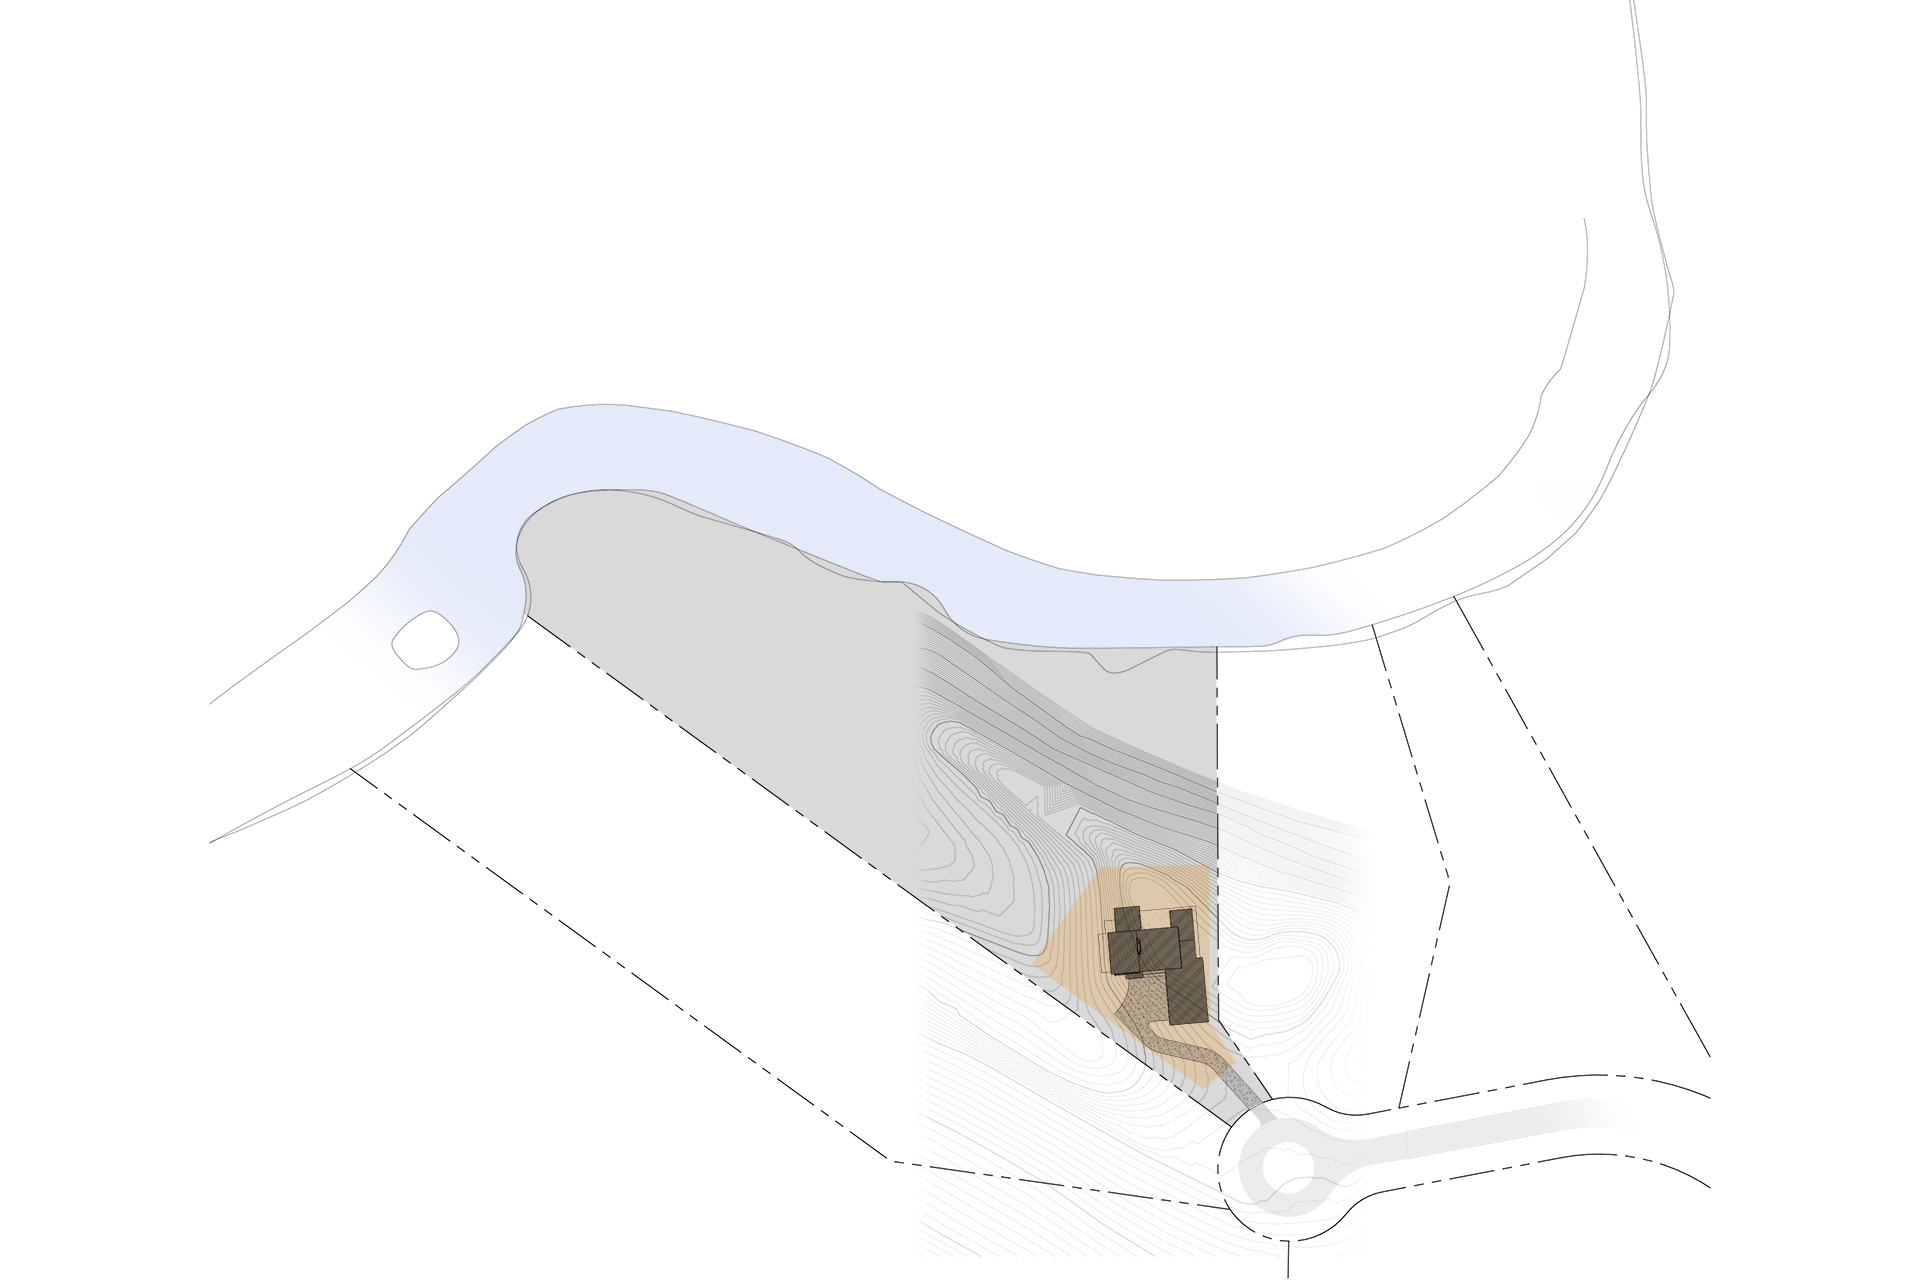 Rouge River site plan by Lucid Architecture